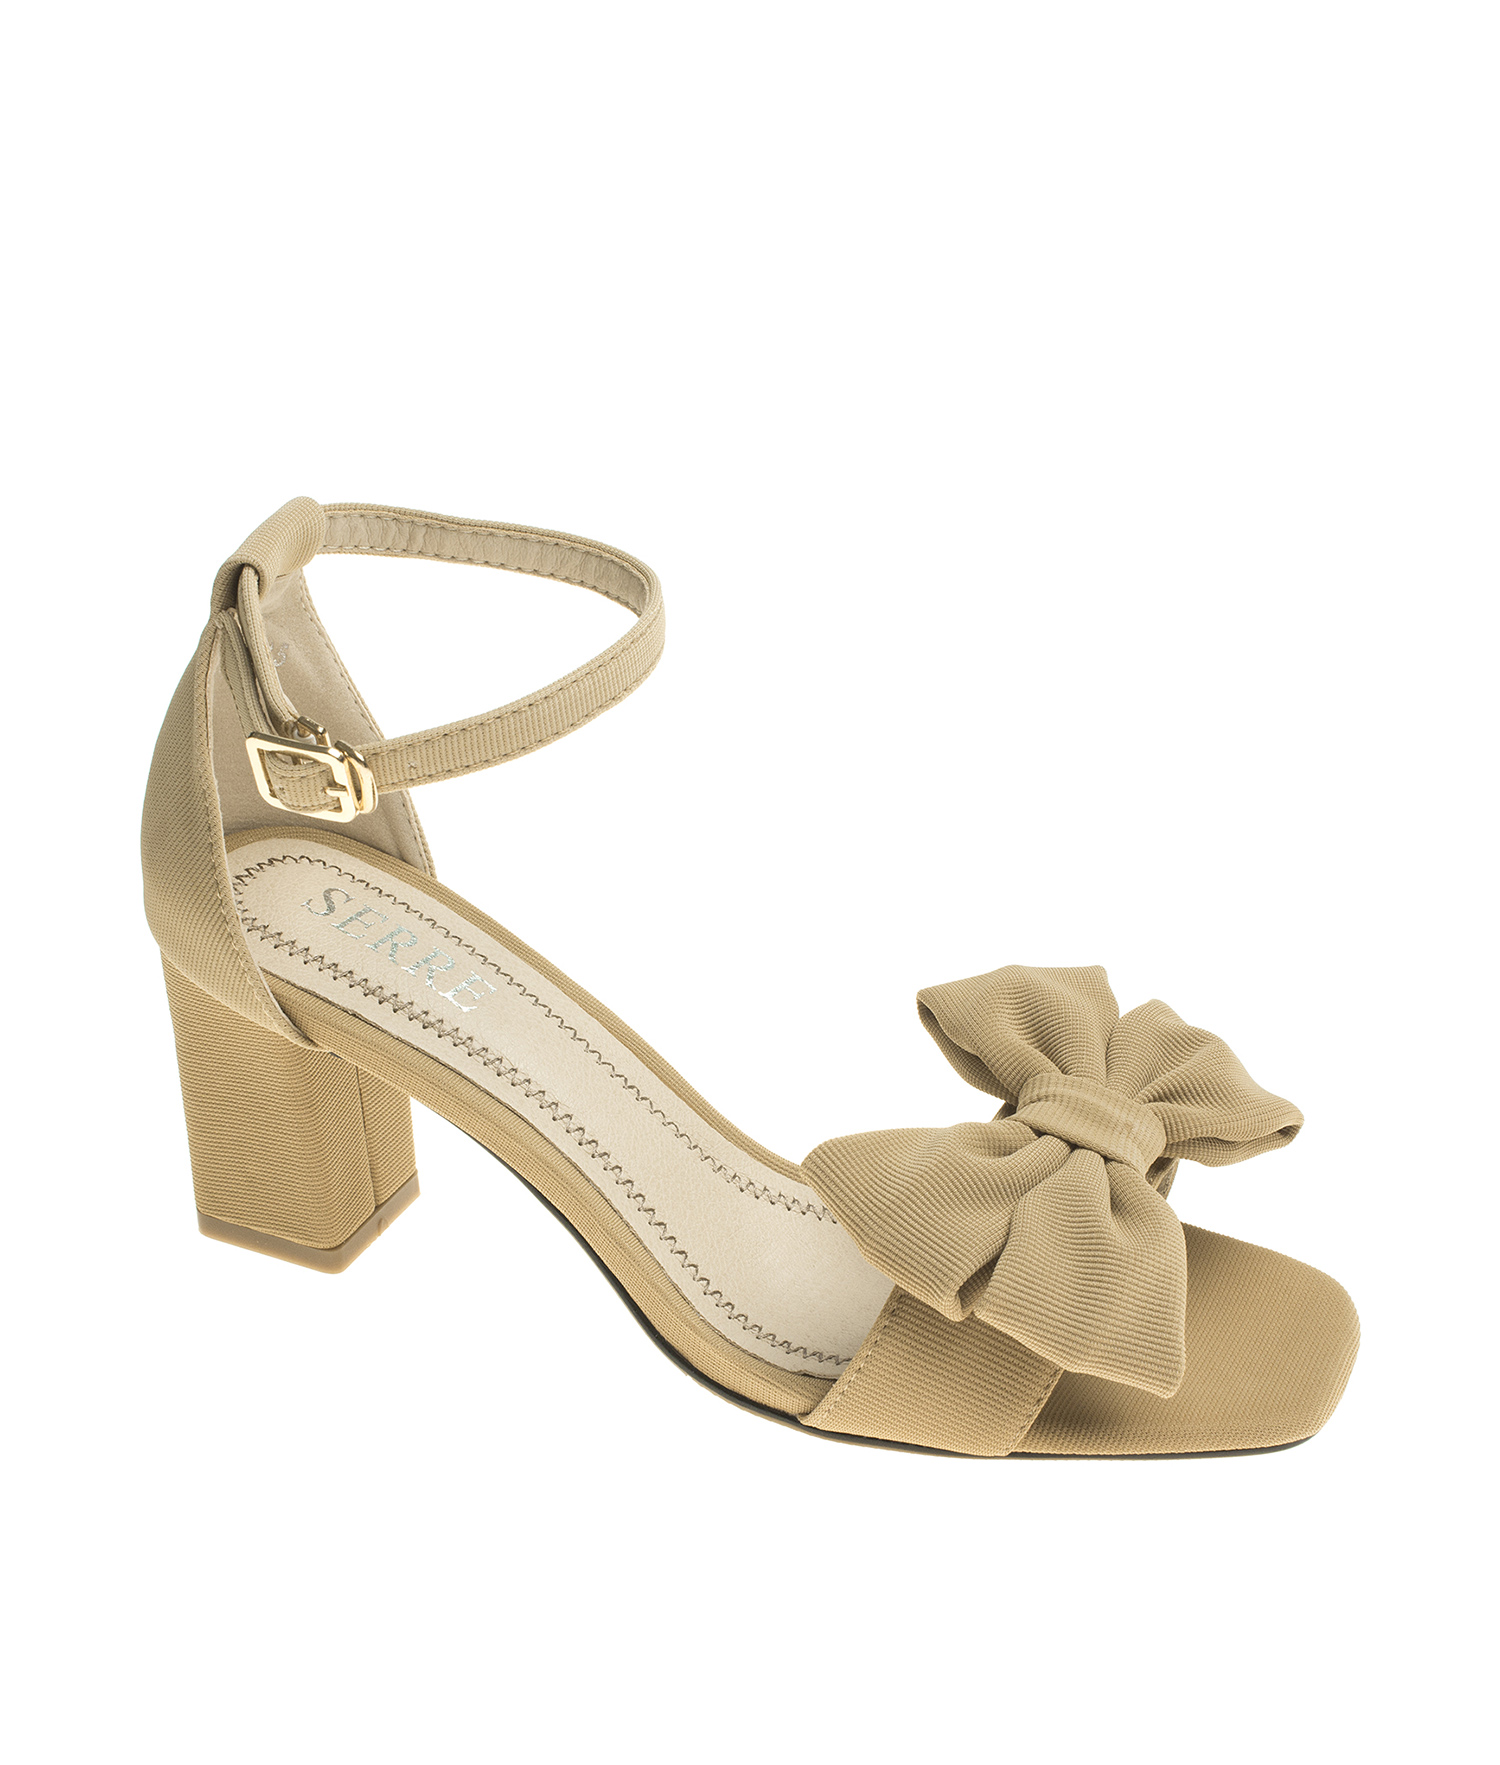 AnnaKastle Womens Ankle Strap Heel Sandals Bow Dress Shoes Beige